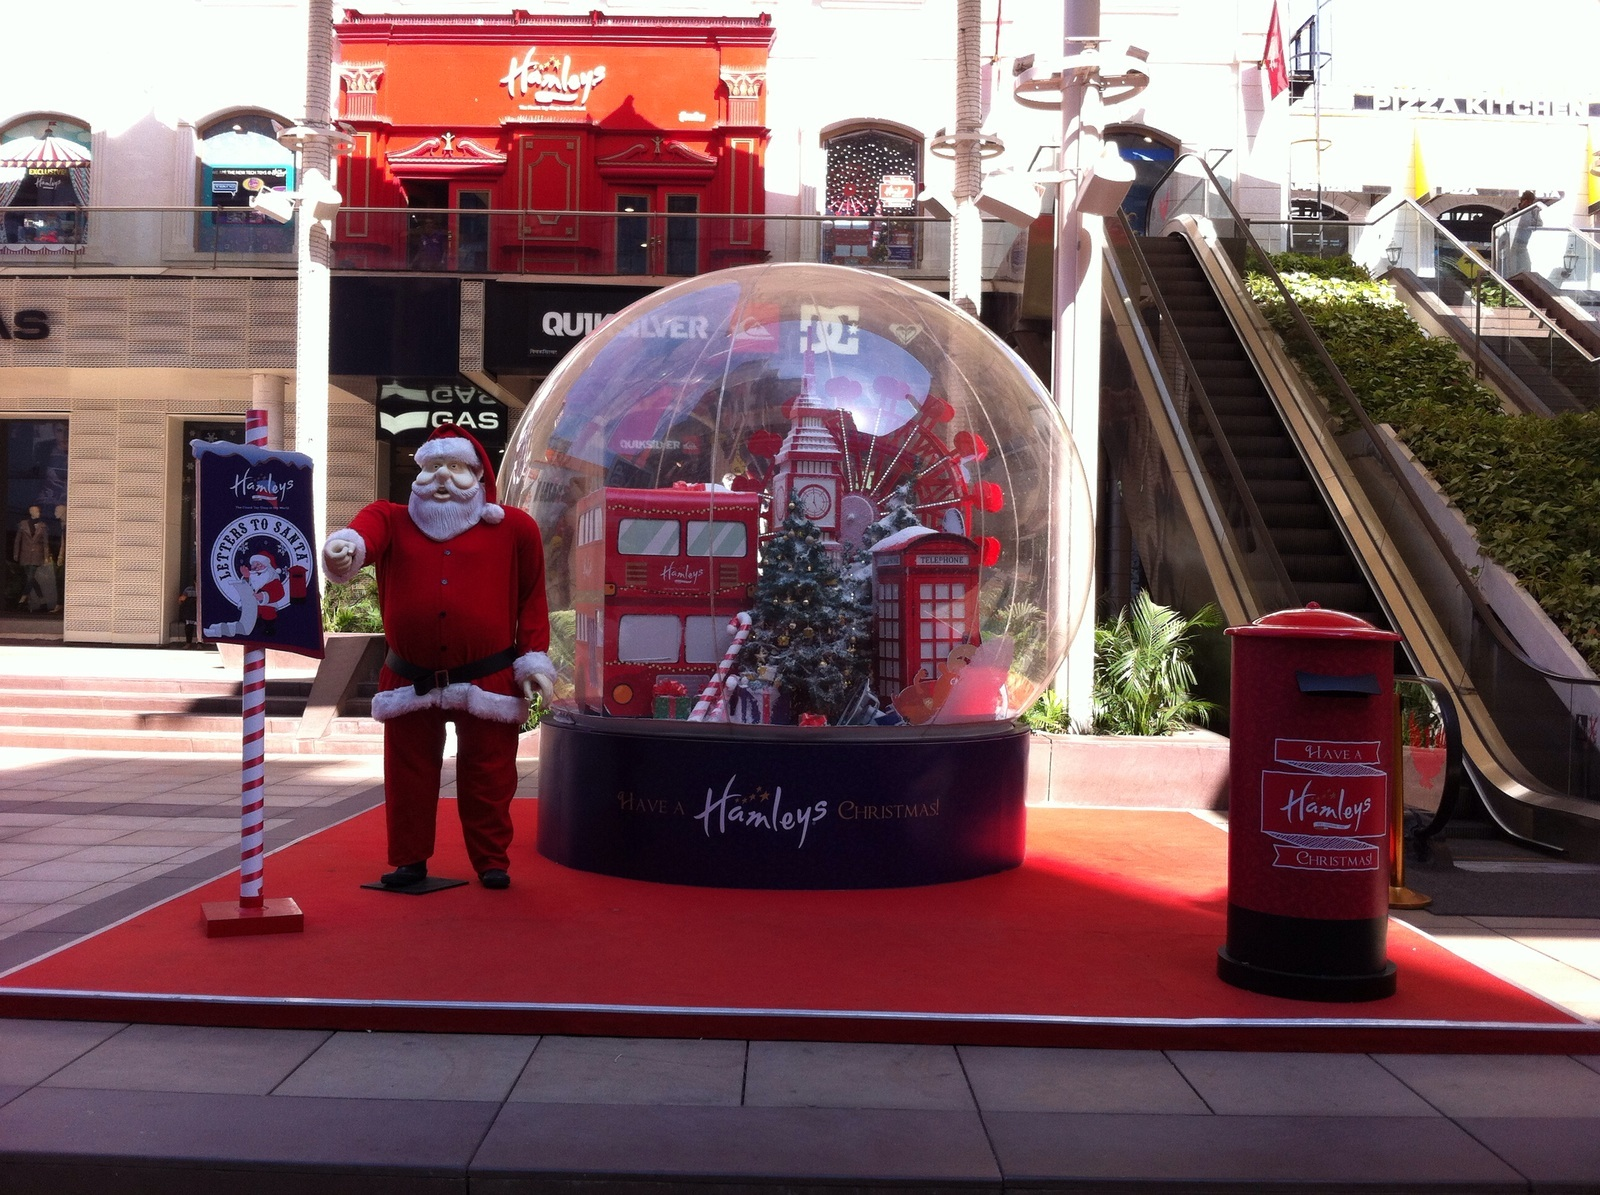 Hamleys Goes All Out to Engage Customers During Christmas